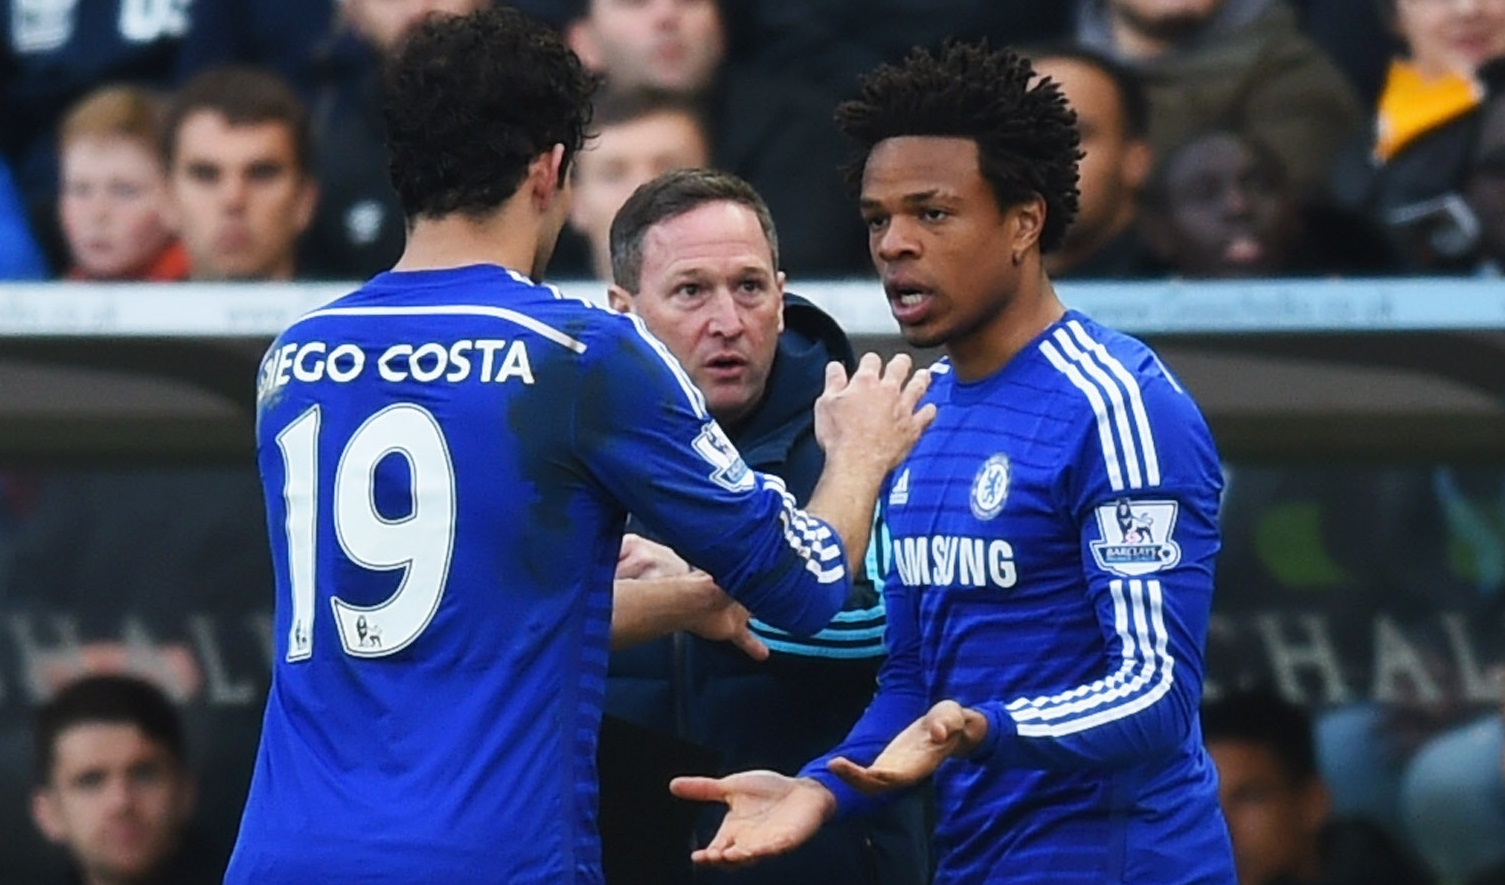 Diego Costa and Loic Remy